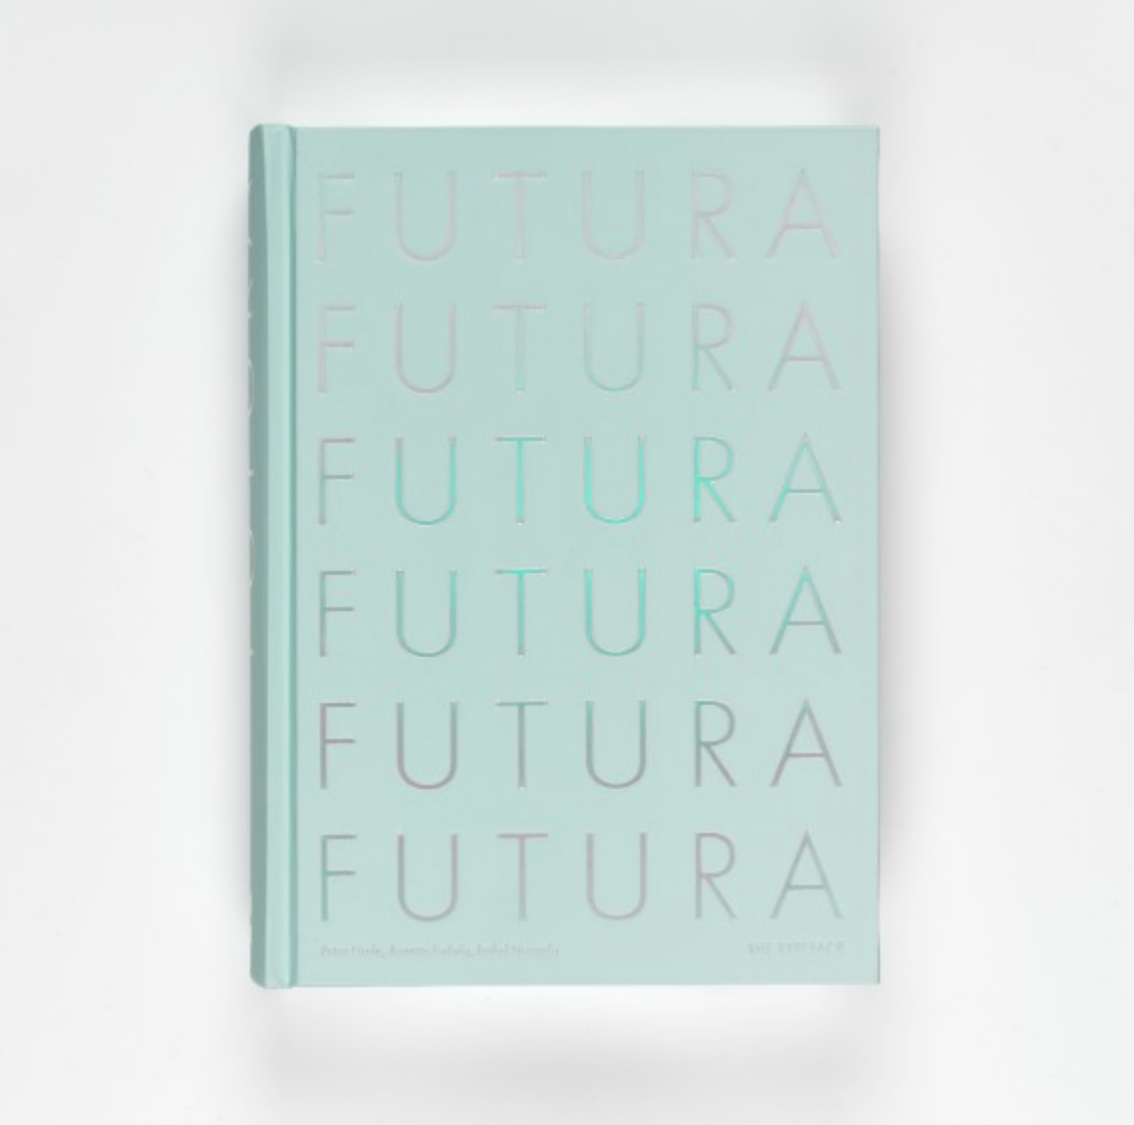 Did you know that Futura was the first font on the moon in 1969